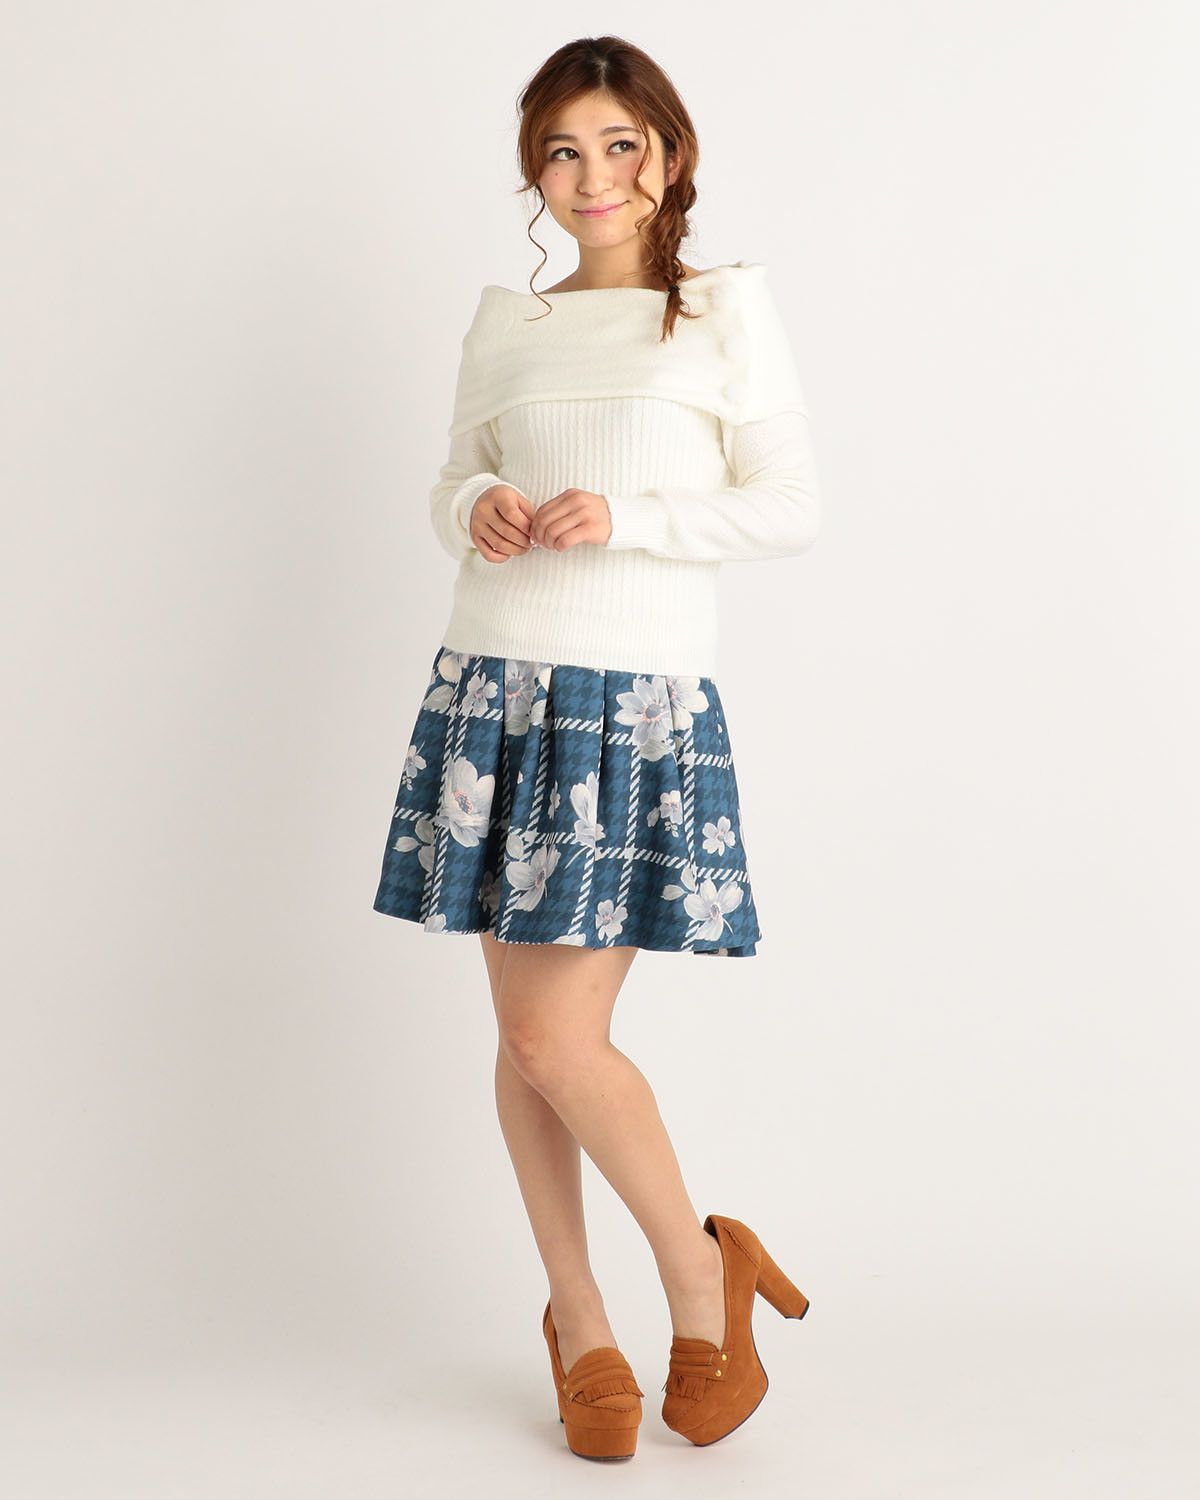 bbe9ead3c6a70 From the beloved Japanese fashion brand LIZ LISA comes a gorgeous knit  sweater that you can